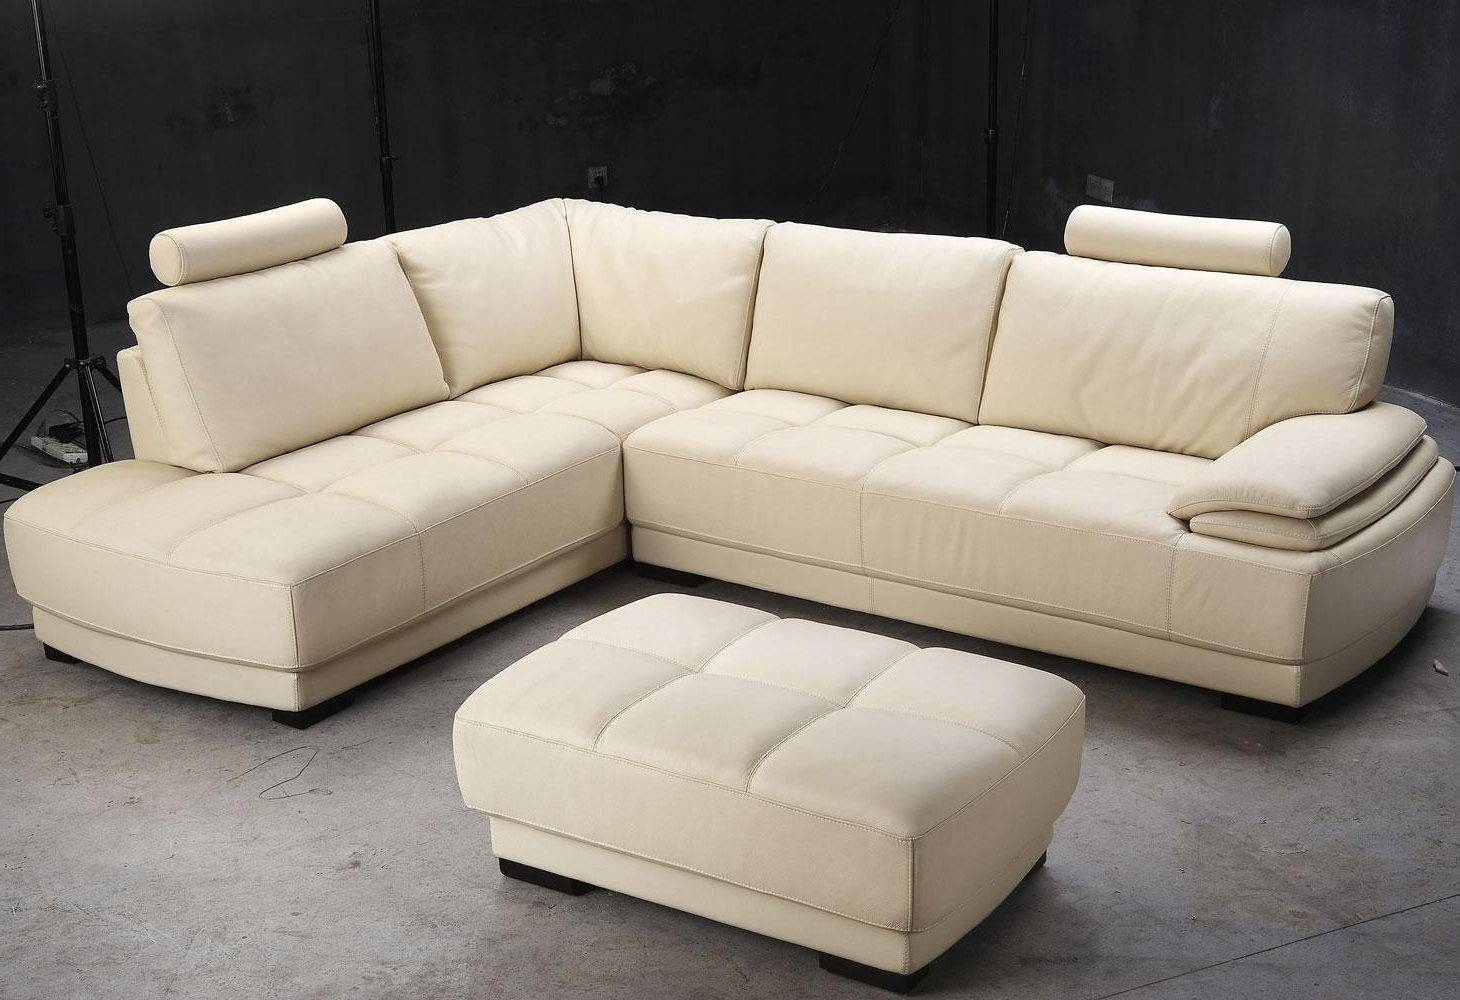 Furniture: Havertys Sofas For Inspiring Small Space Living Sofa with regard to Havertys Bentley Sectional Sofas (Image 9 of 15)